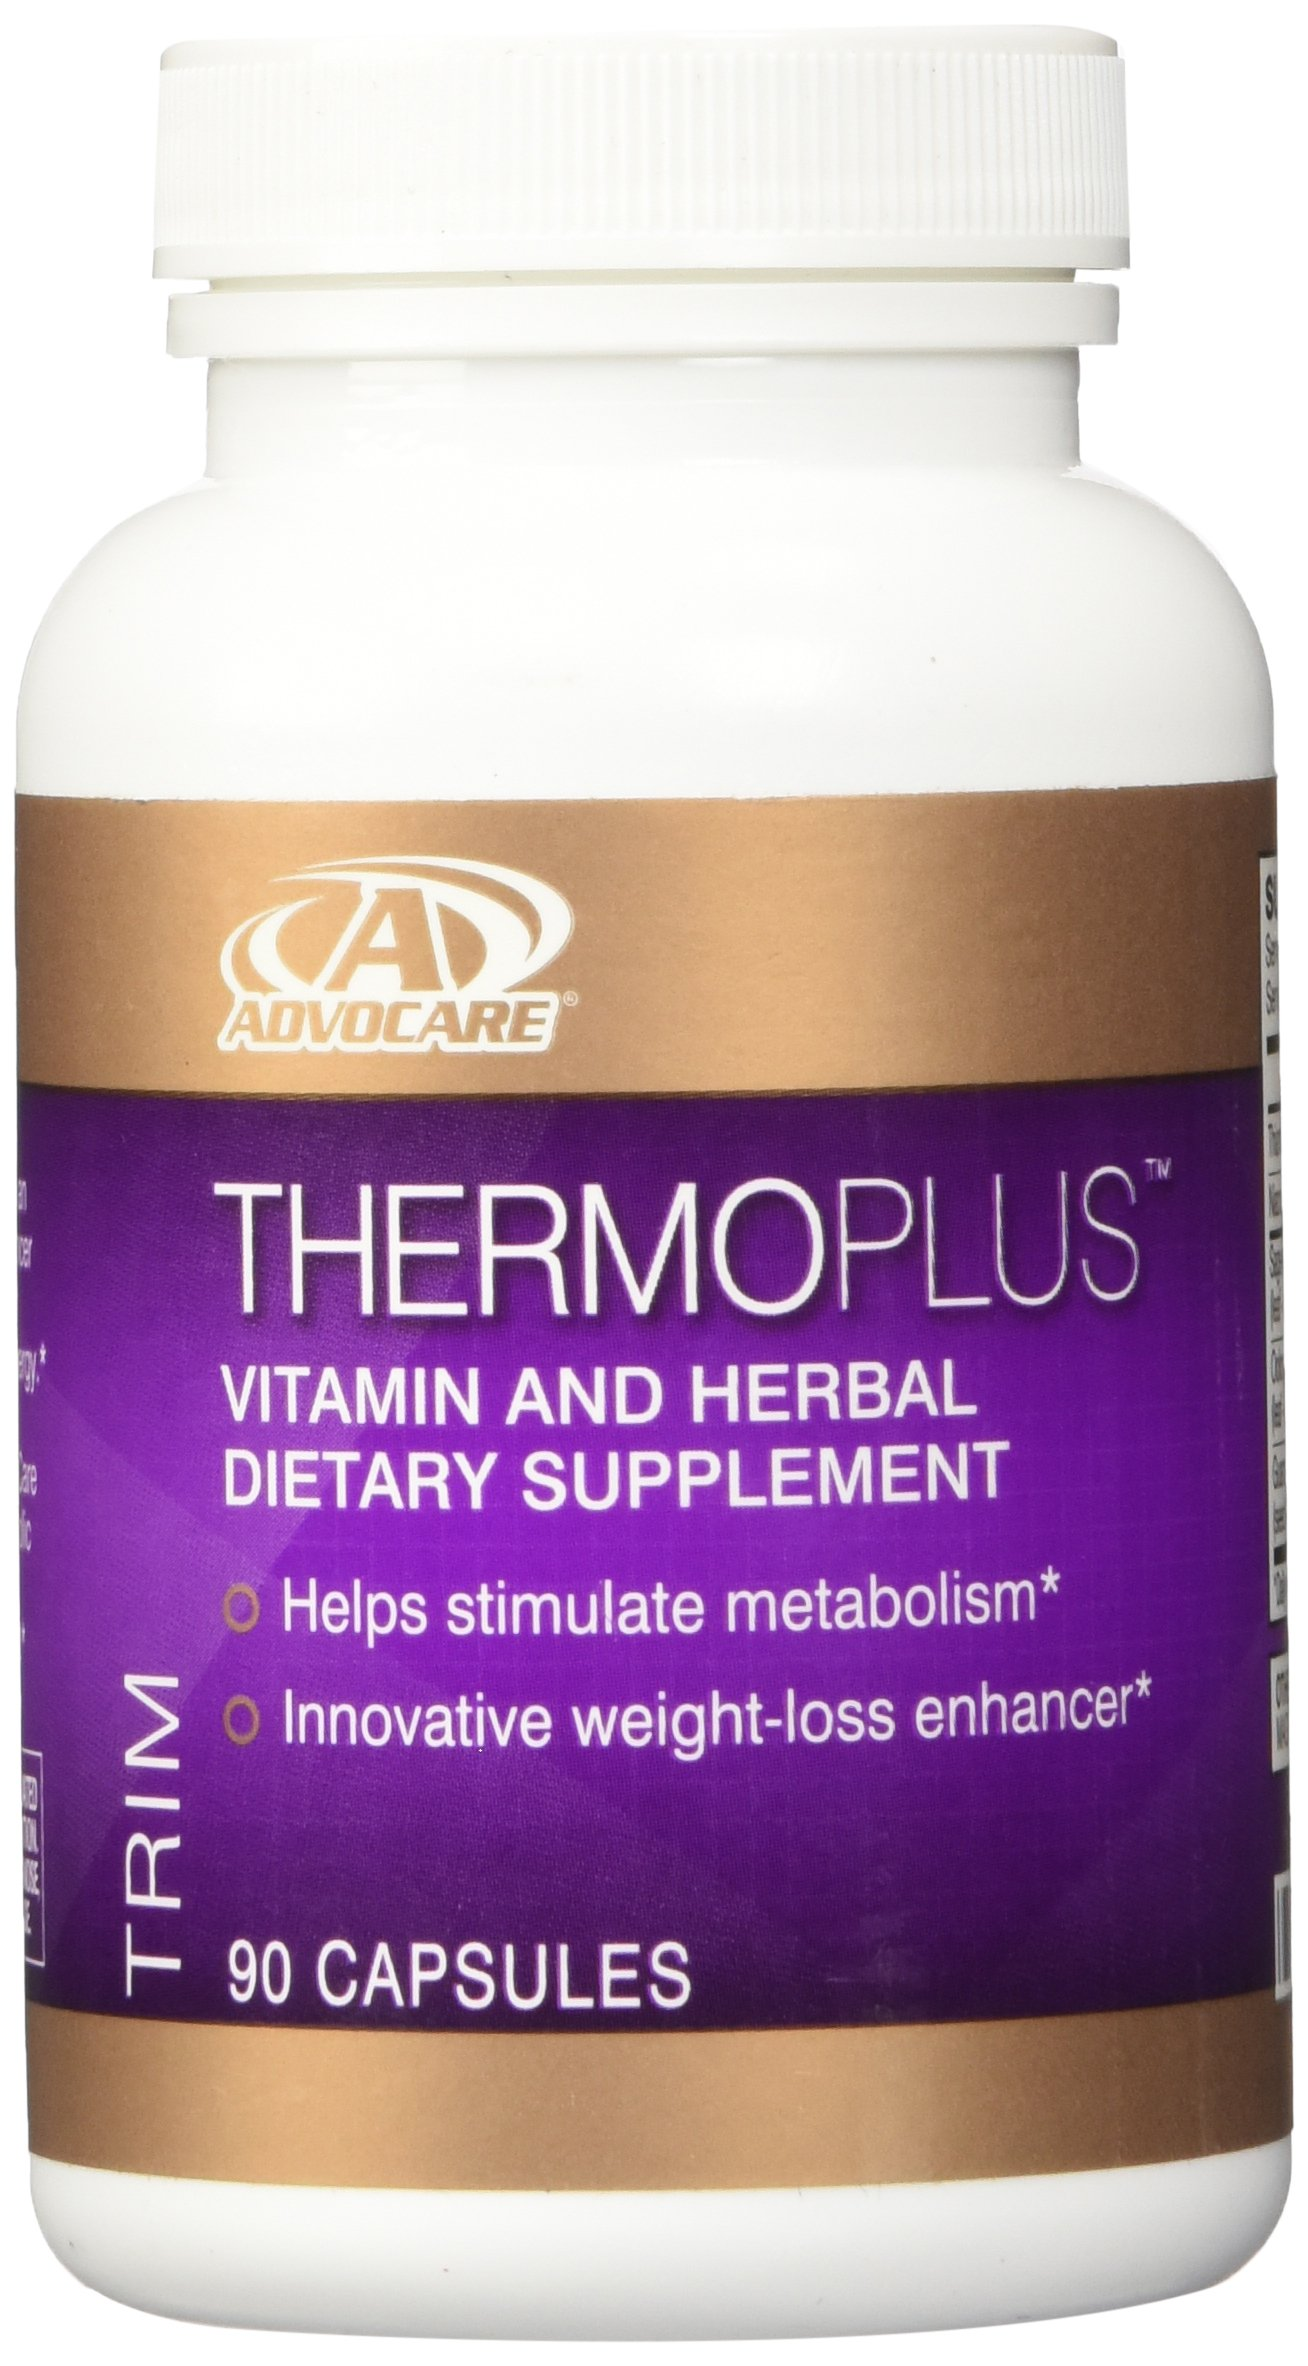 AdvoCare Thermoplus Vitamin and Herbal Dietary Supplement 90 Capsules by AdvoCare